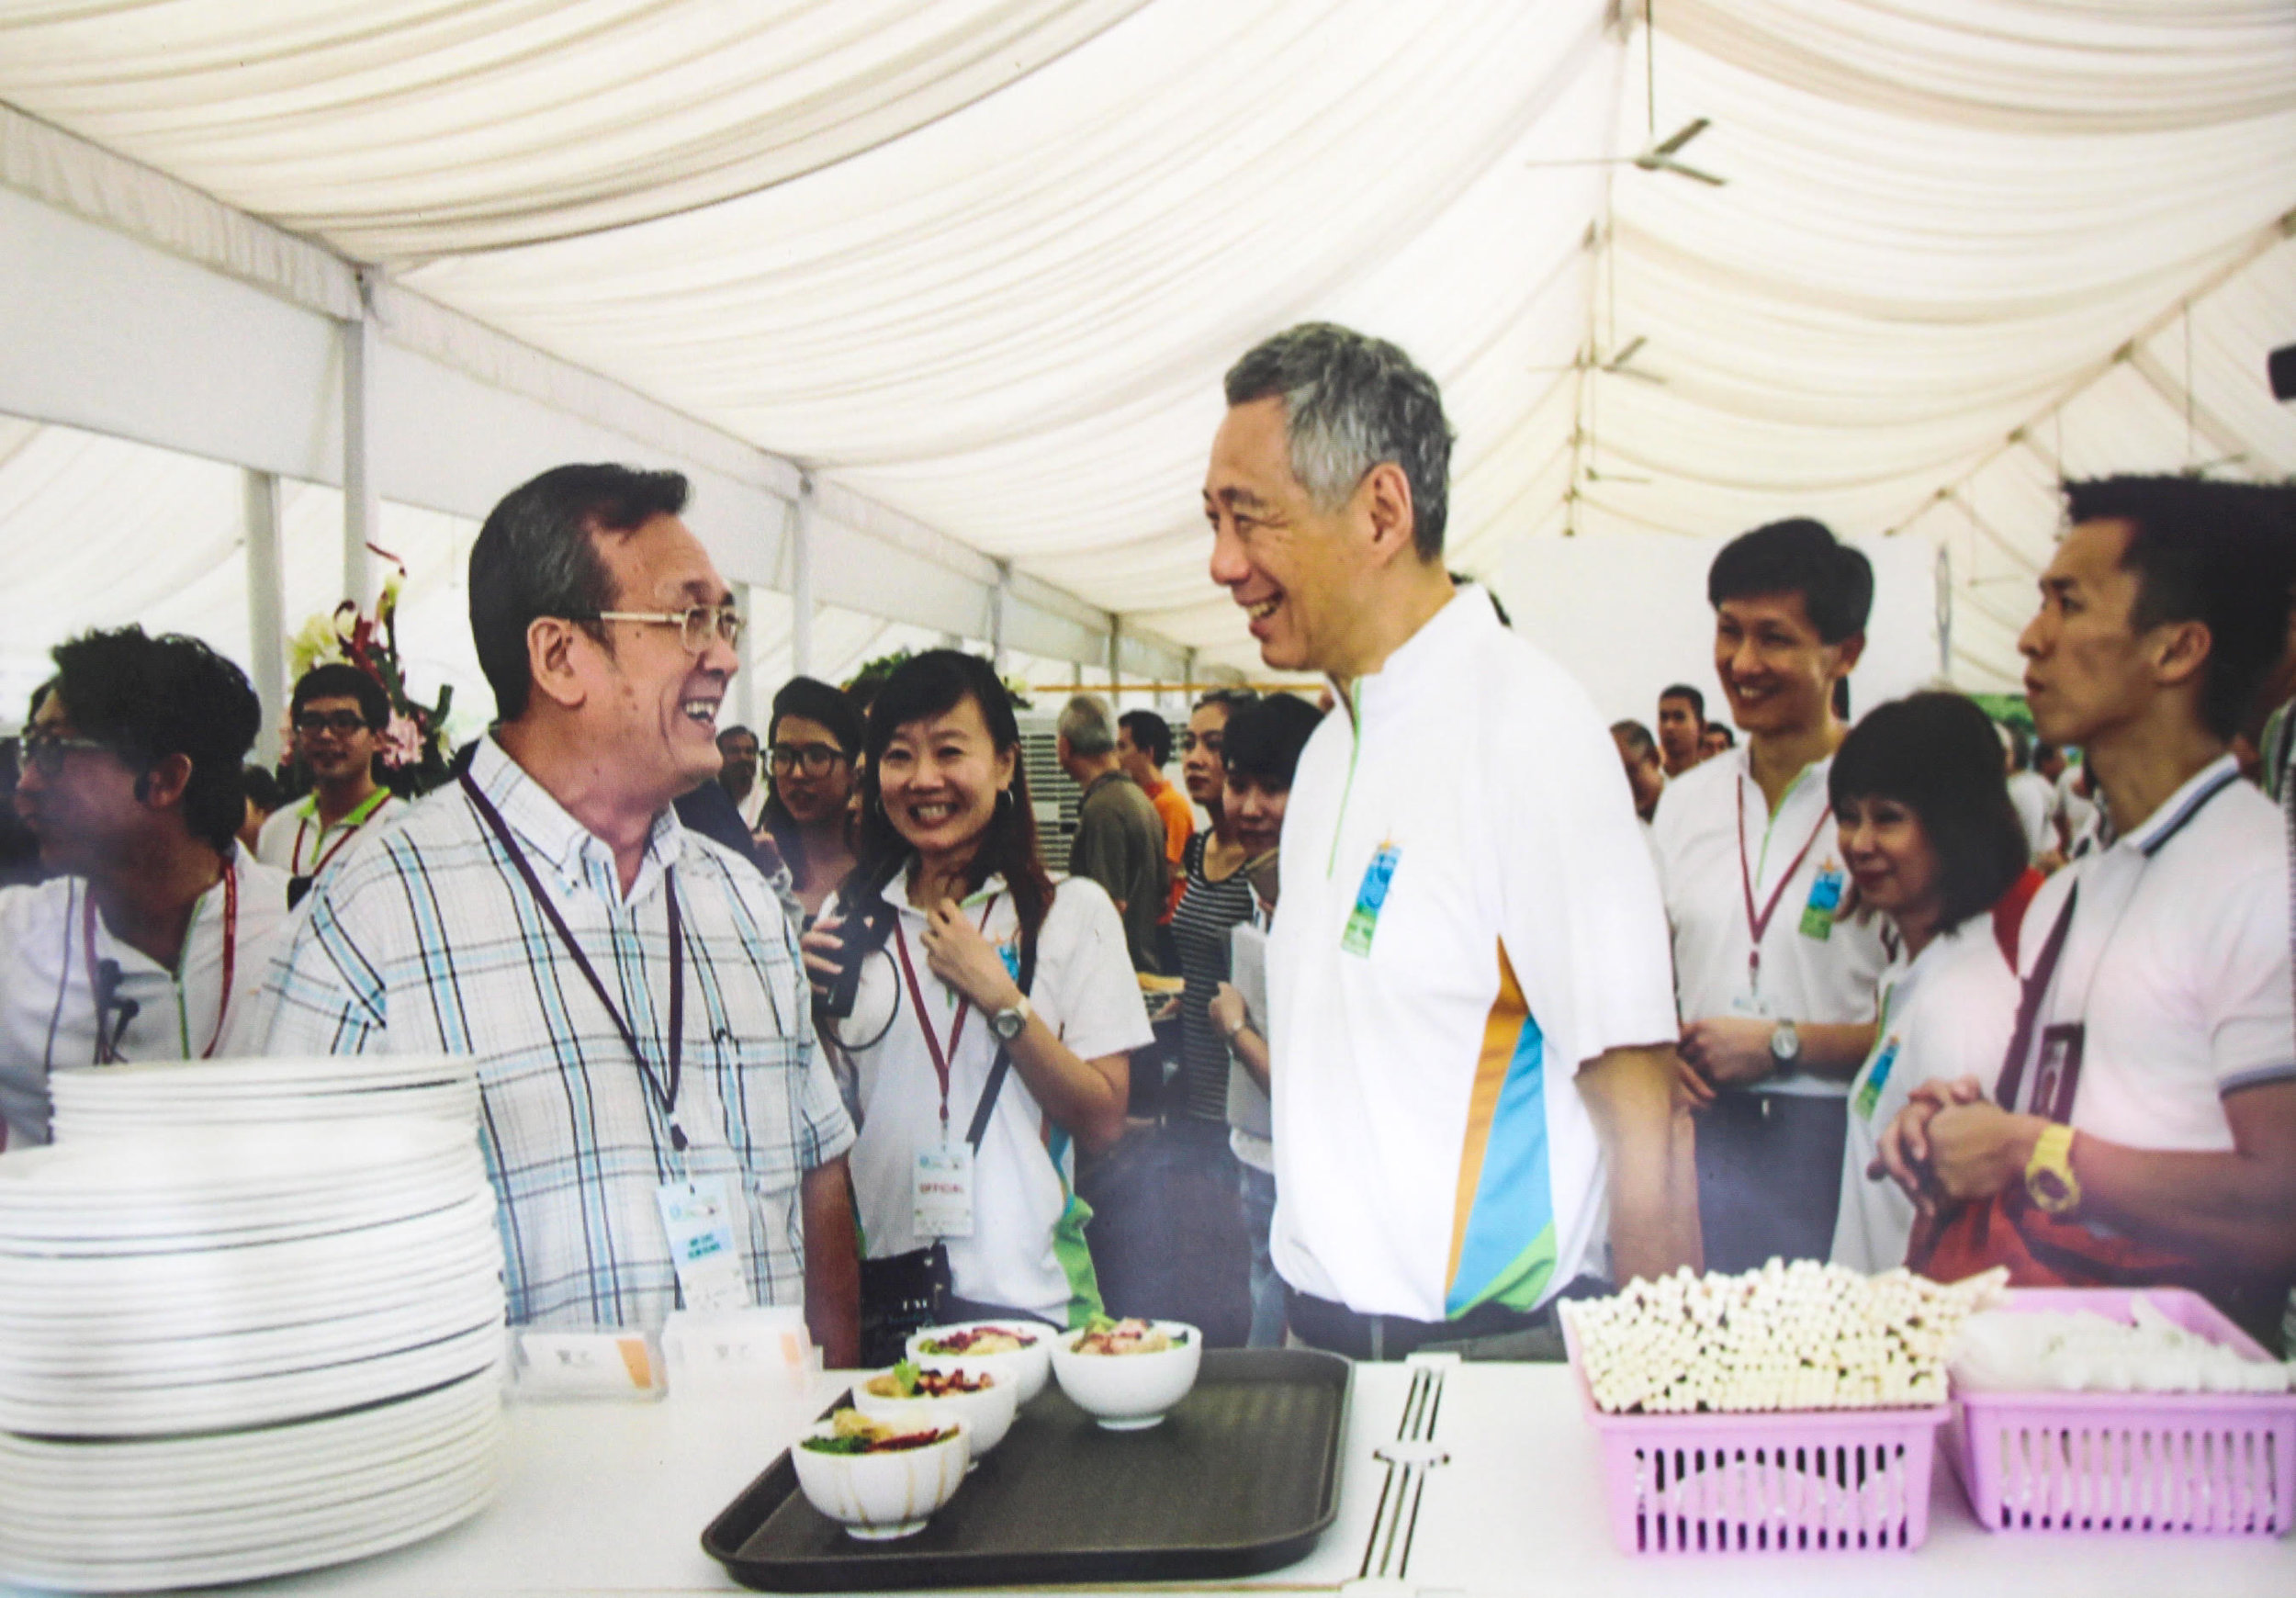 Cho Kum Kong serving Cho Noodles to Singapore's current Prime Minister, Lee Hsien Loong, at a food fair.